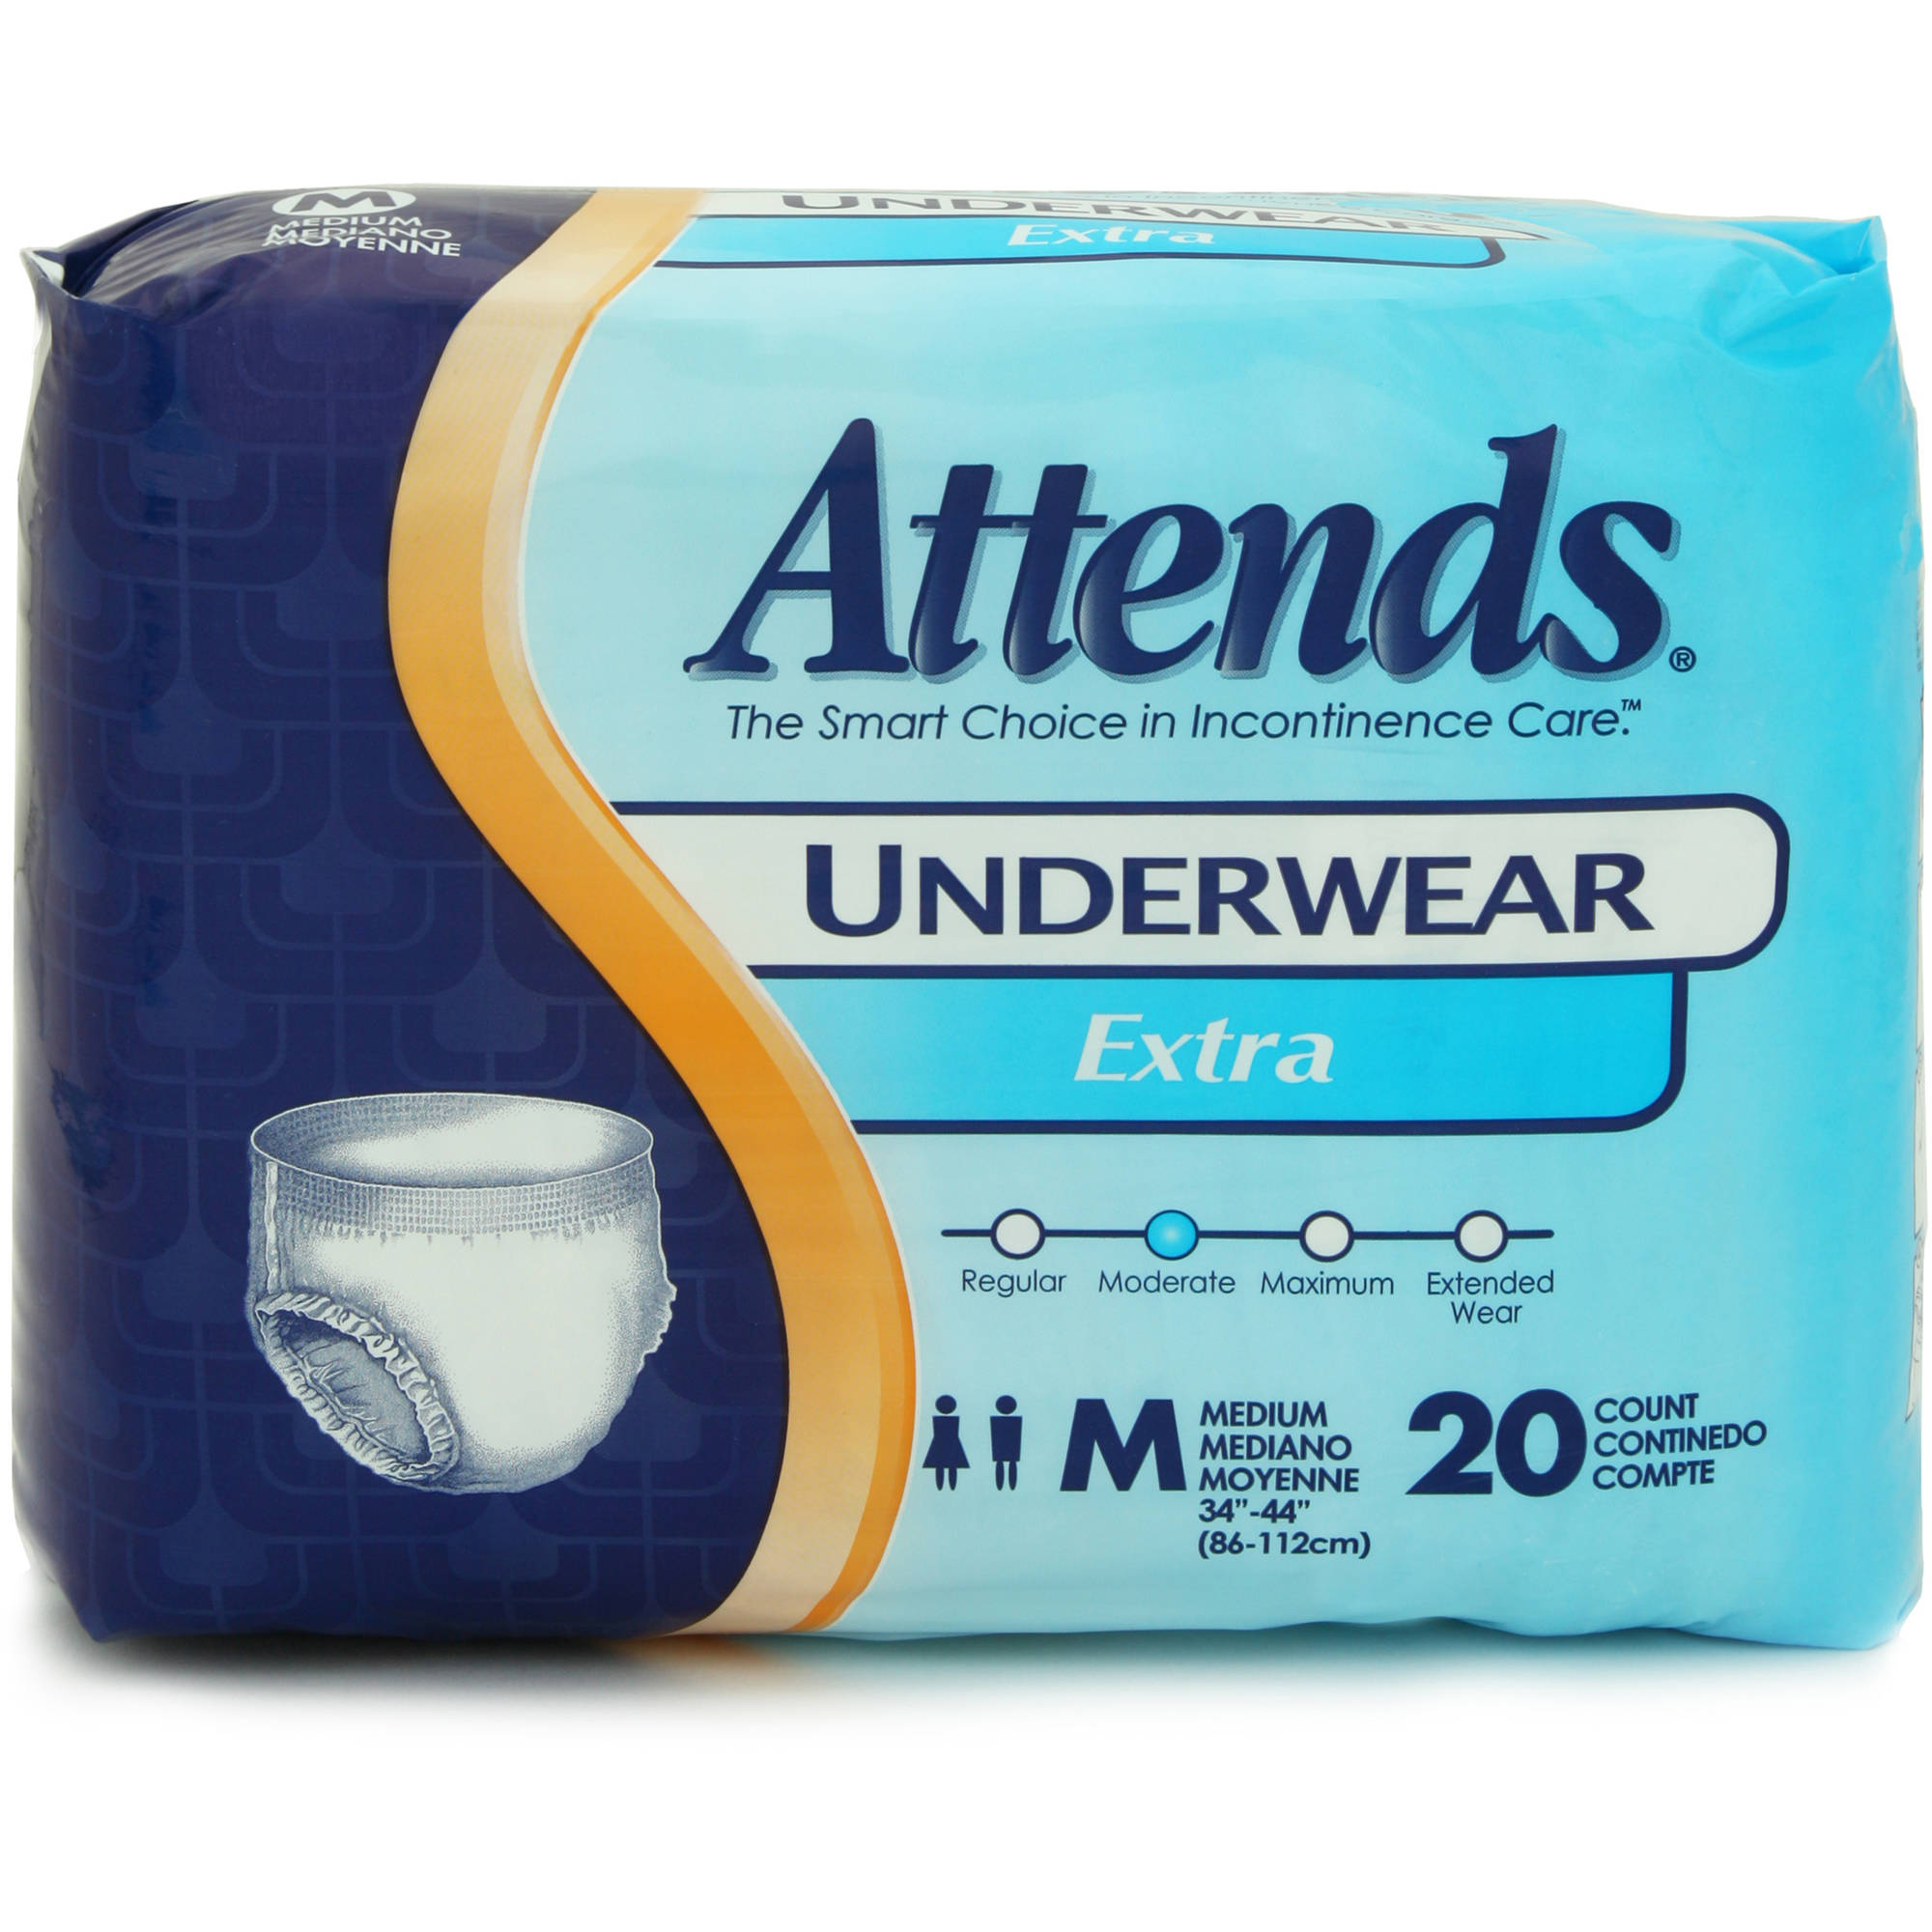 Attends Extra Absorbency Medium Protective Underwear, 20ct